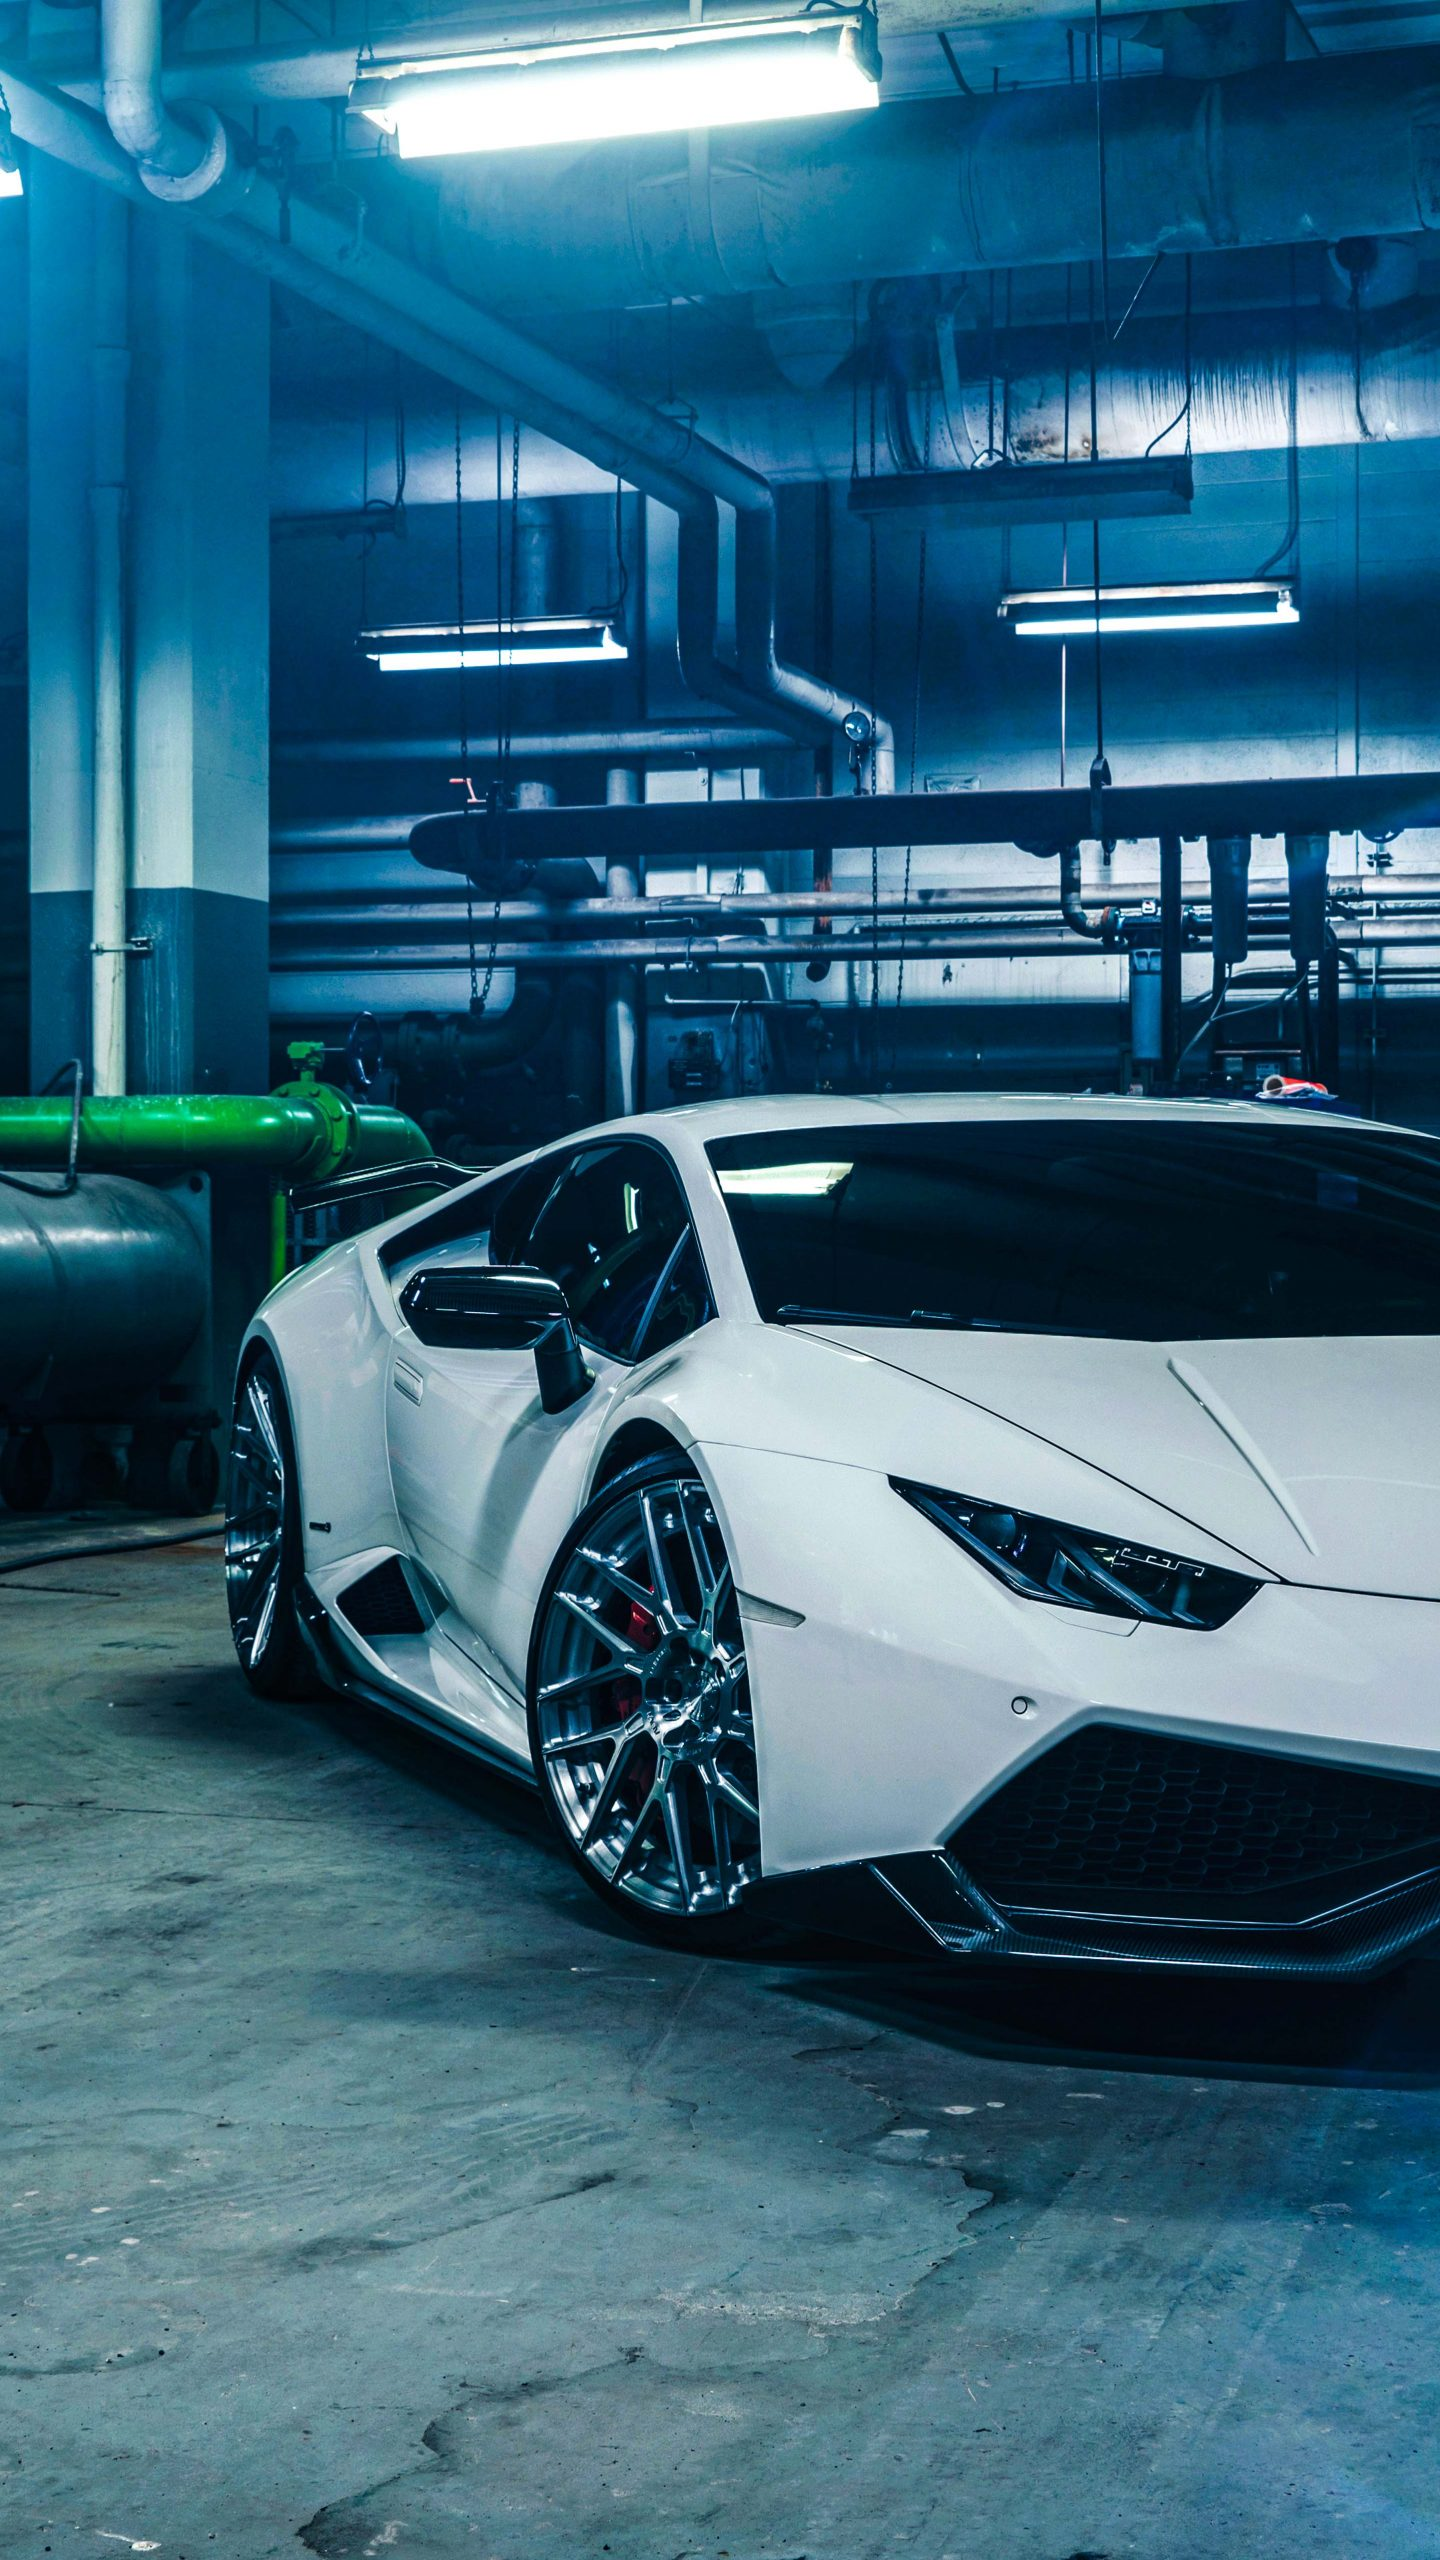 Lamborghini Huracan Car Sport Car Luxury Car 8k Wallpaper Best Wallpapers